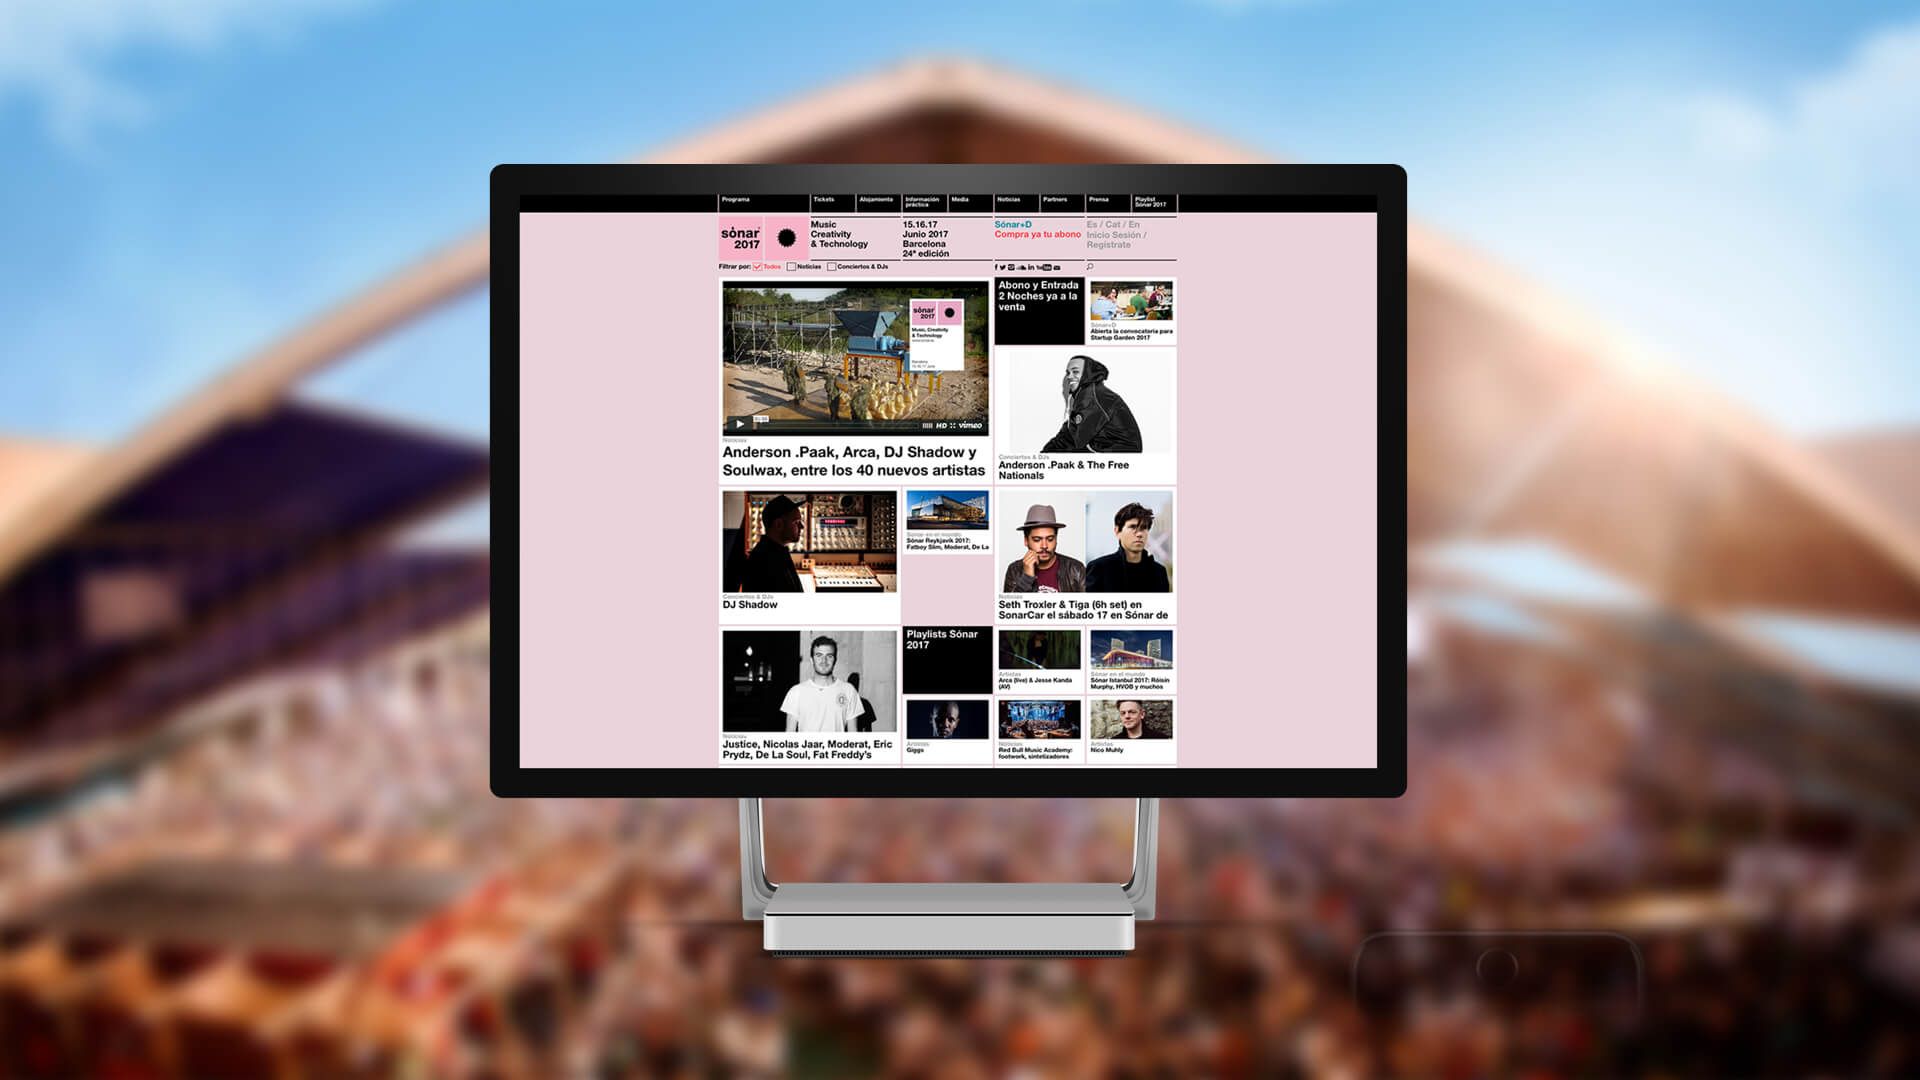 Screenshot of the Sonar 2017 website upon a blurred concert image background